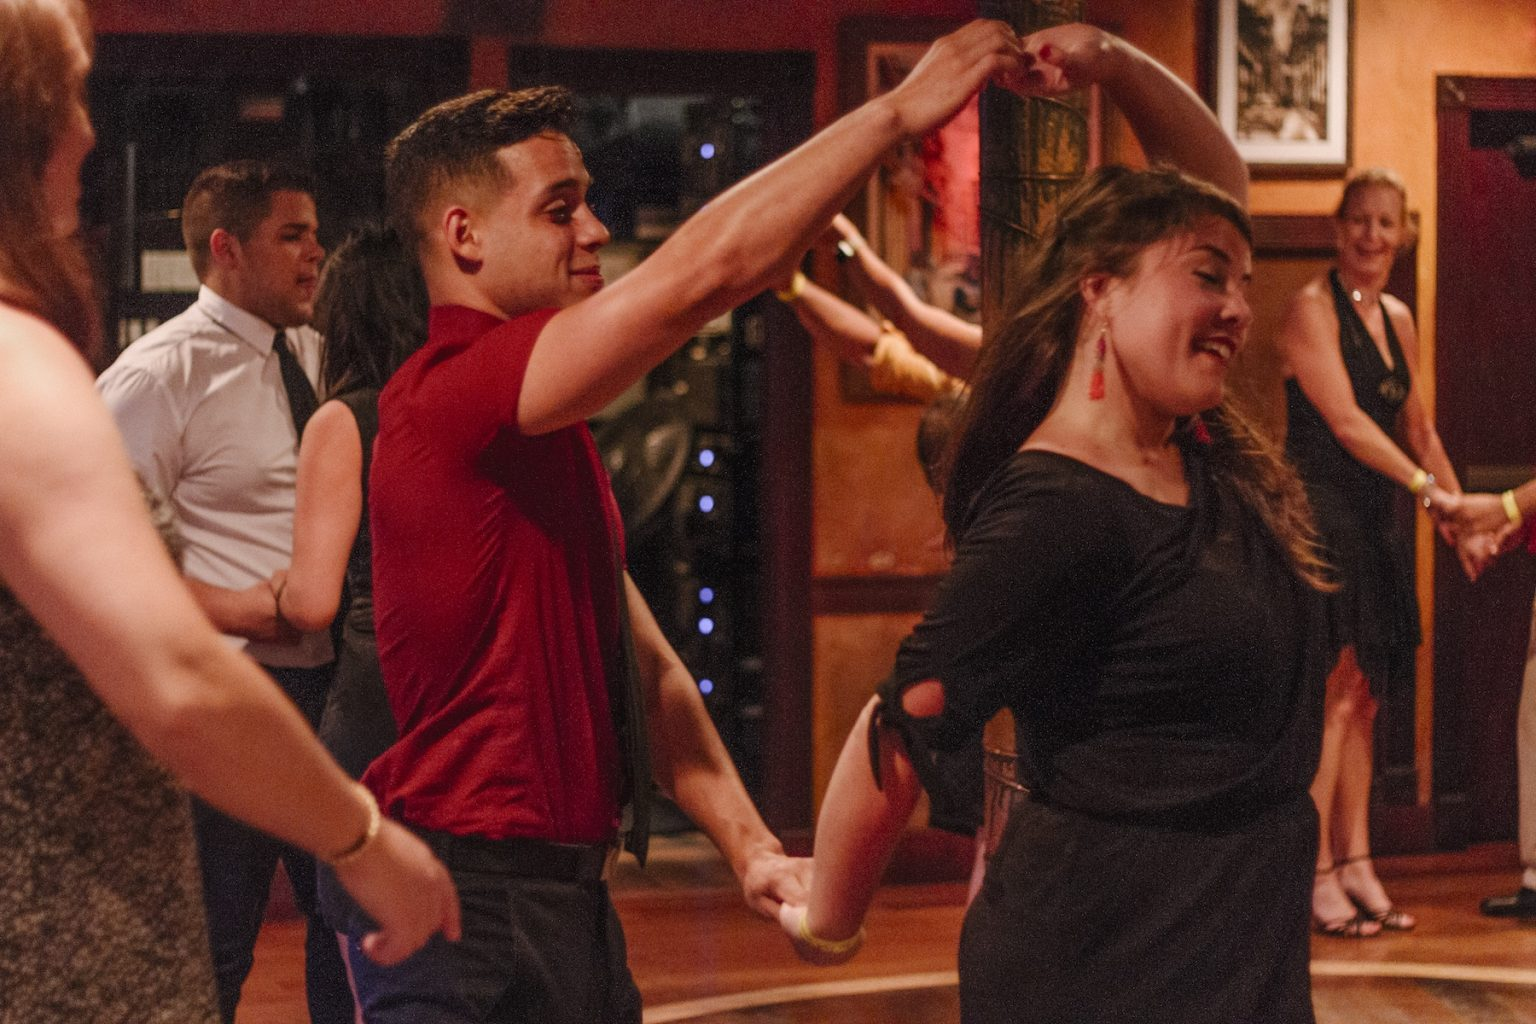 Experience host Kevin leads a dancer during his Miami Airbnb experience Salsa & Bachata Night in Miami